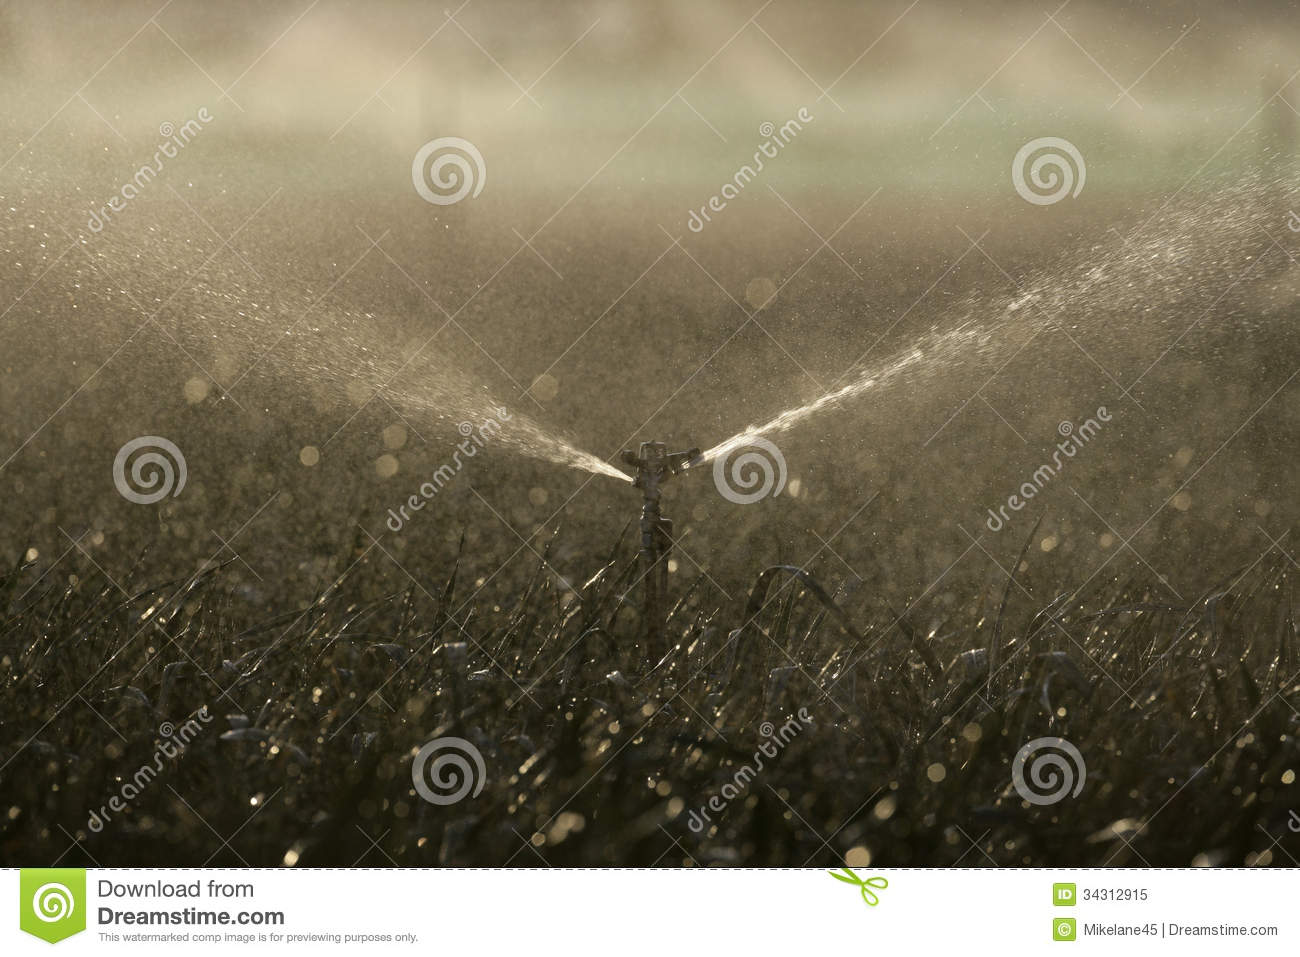 Water Sprinklers On Crops Royalty Free Stock Photo   Image  34312915